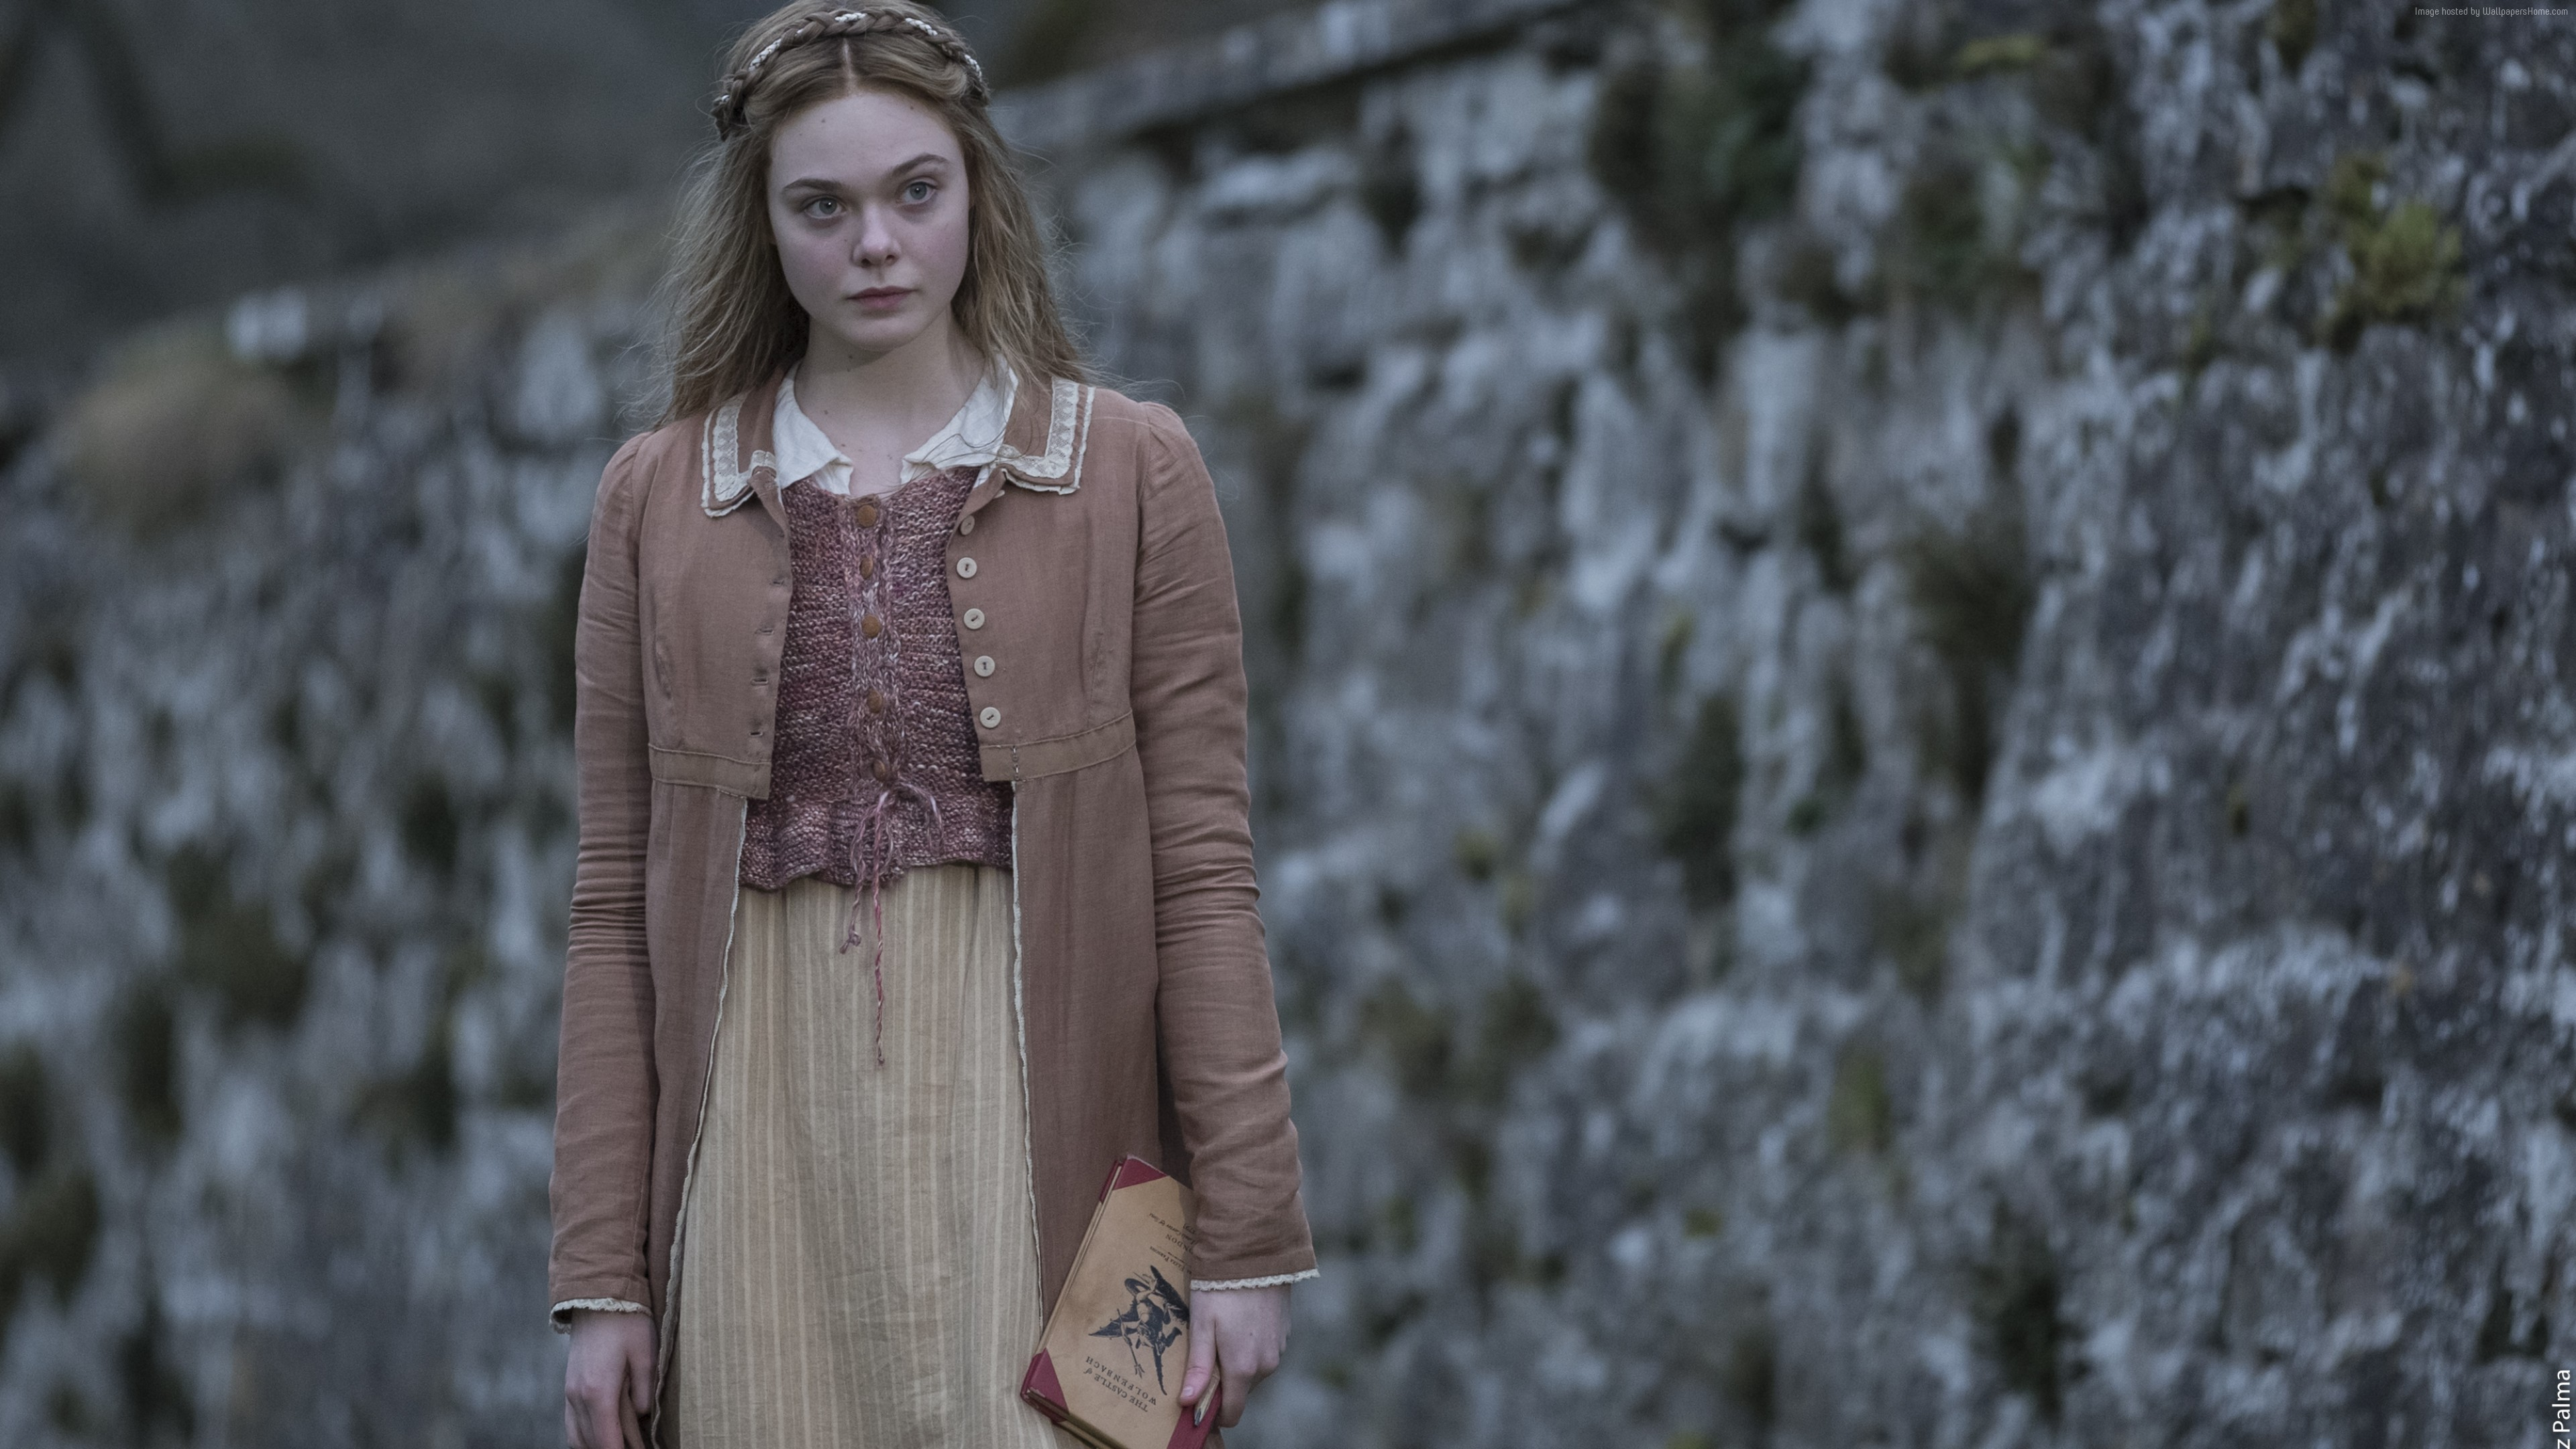 Wallpaper Mary Shelley, Elle Fanning, 4K, Movies